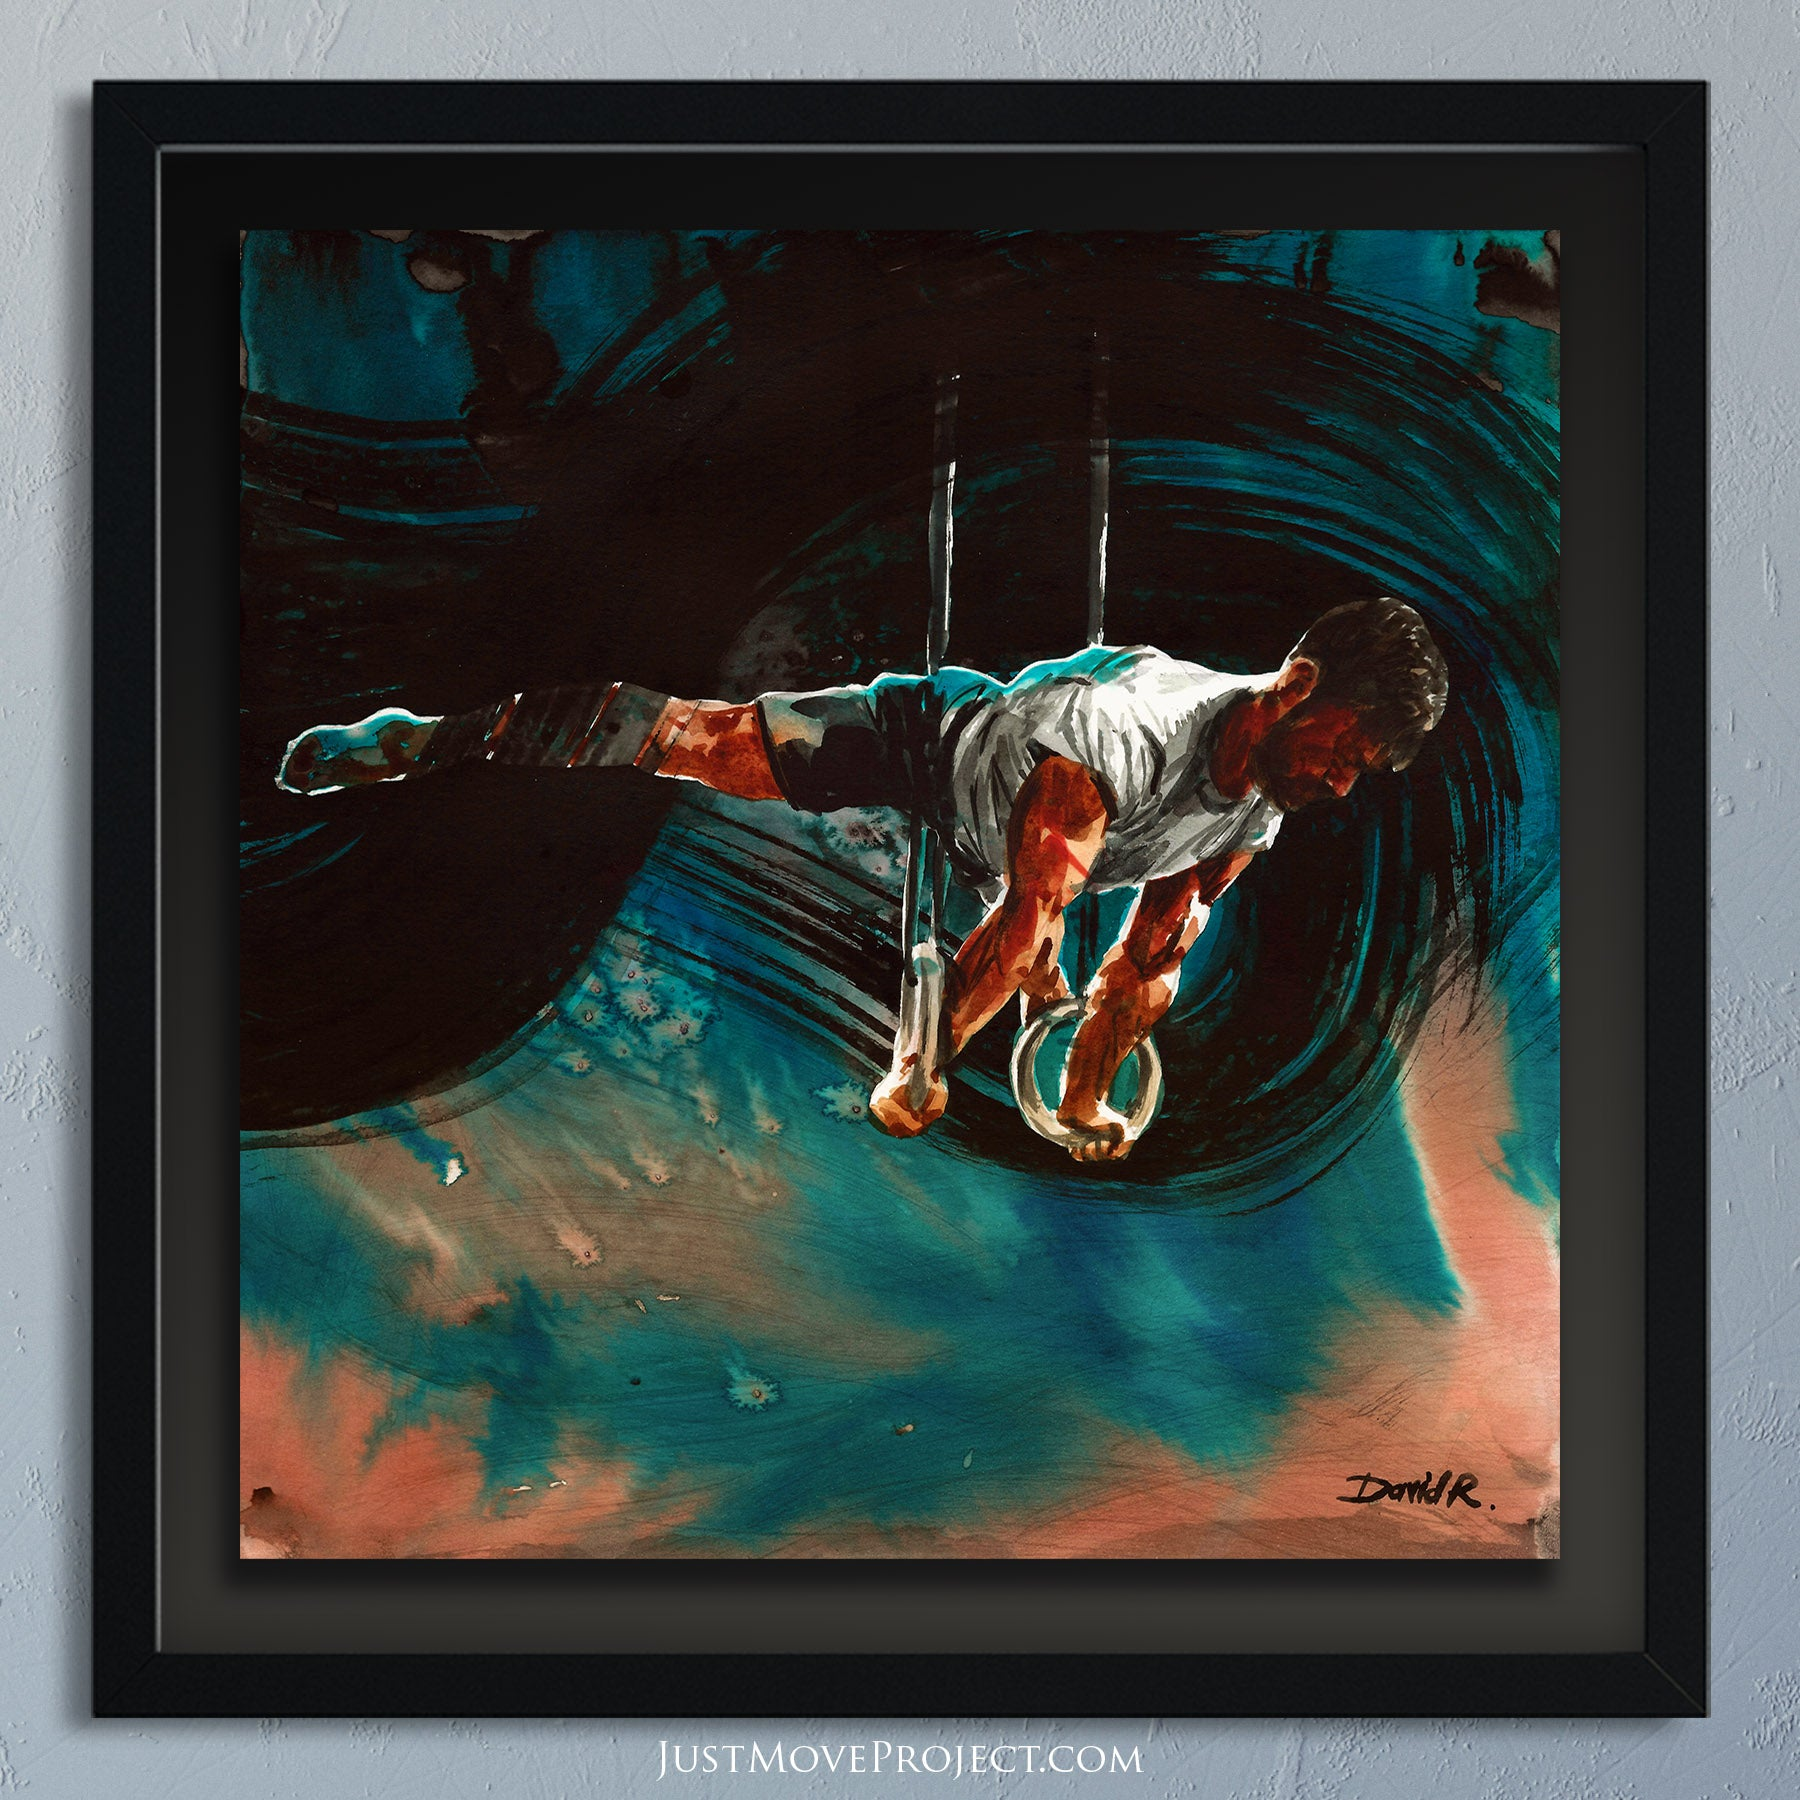 david roman art just move project 2 watercolour watercolor painting vibrant wall art home decor inspired by movement and athletes turquoise teal mauve dave durante gymnast rings teal rose orange